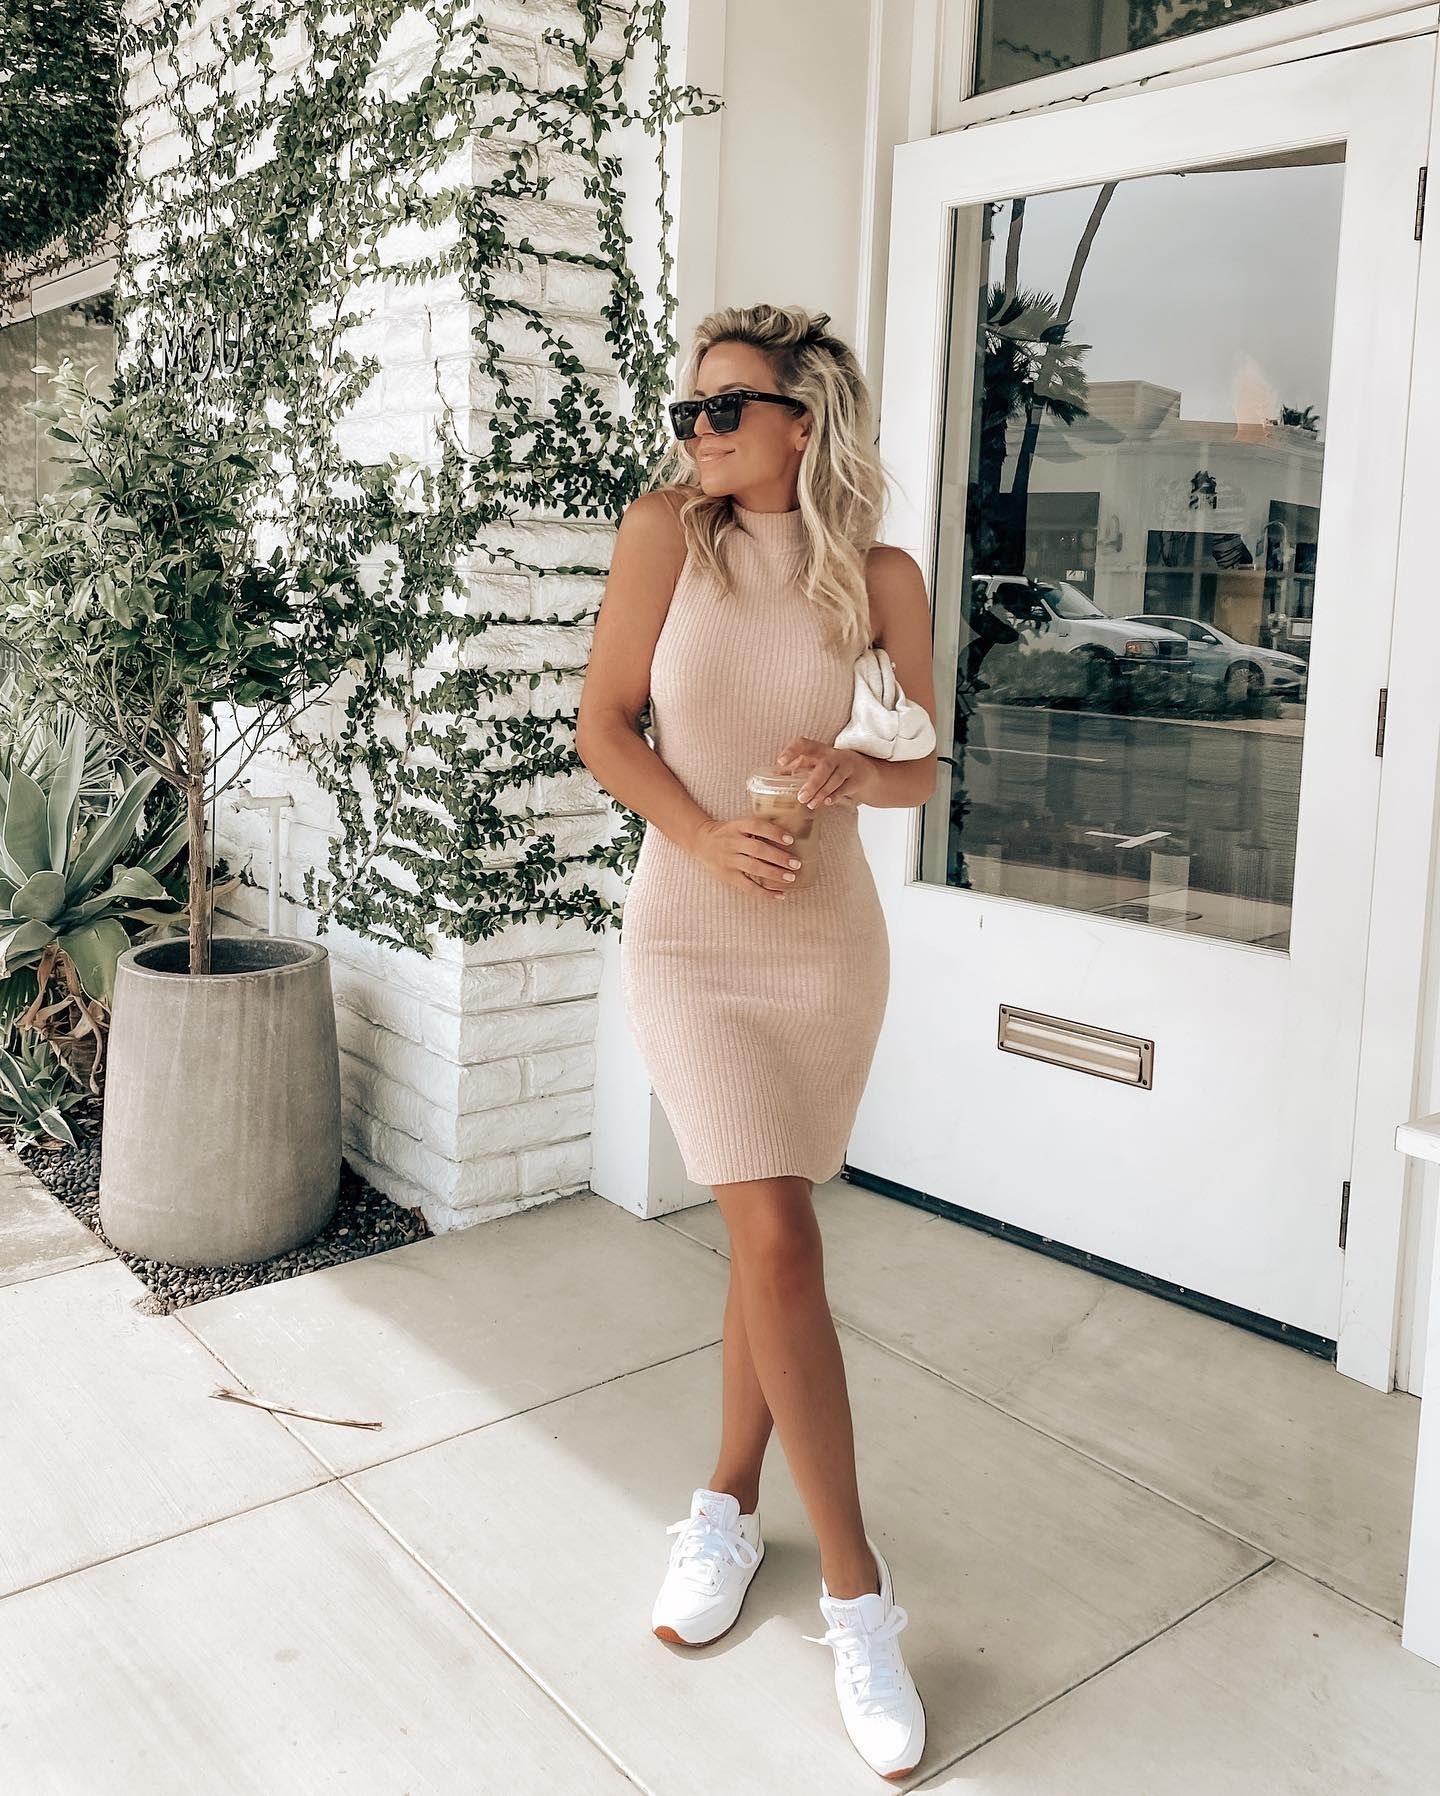 Sweater Dress Style Jennjakson Simple Summer Outfits Simple Dresses Elegant Outfit Classy [ 1796 x 1440 Pixel ]